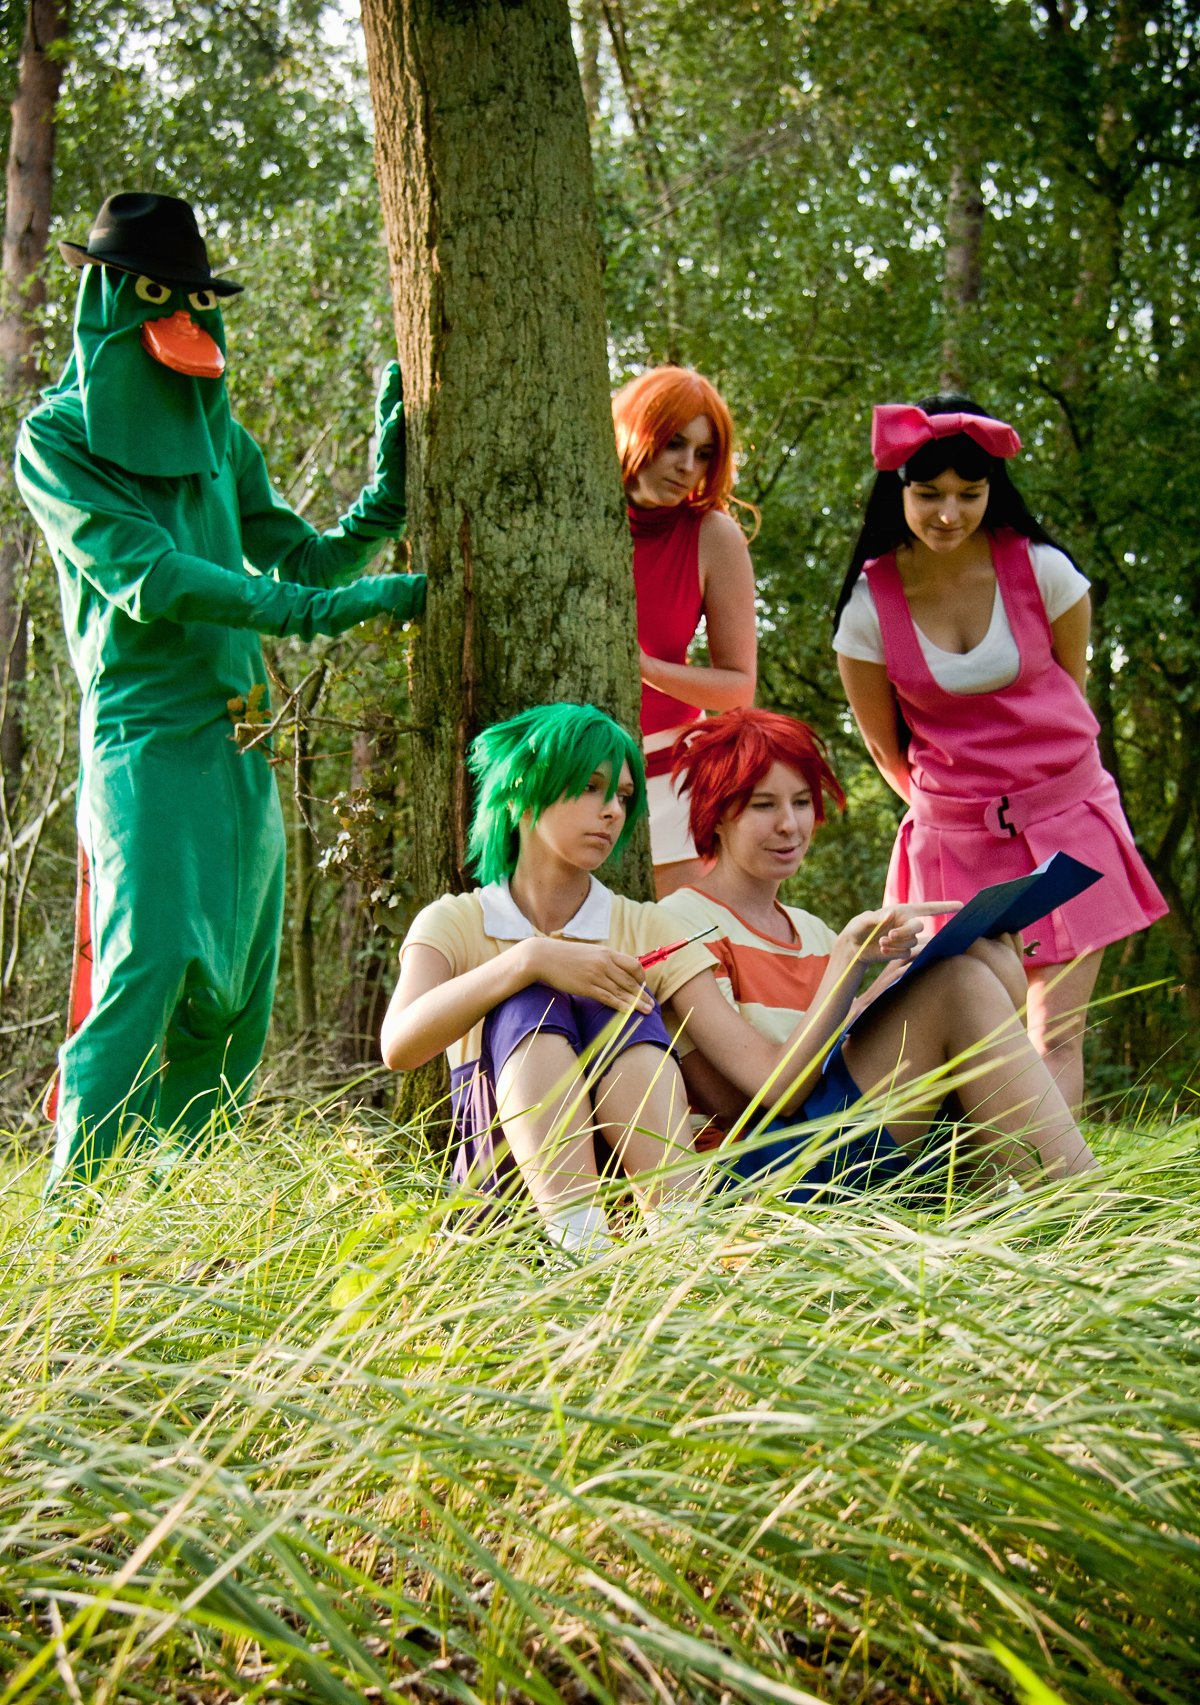 Phineas and Ferb cosplay group by Oloring